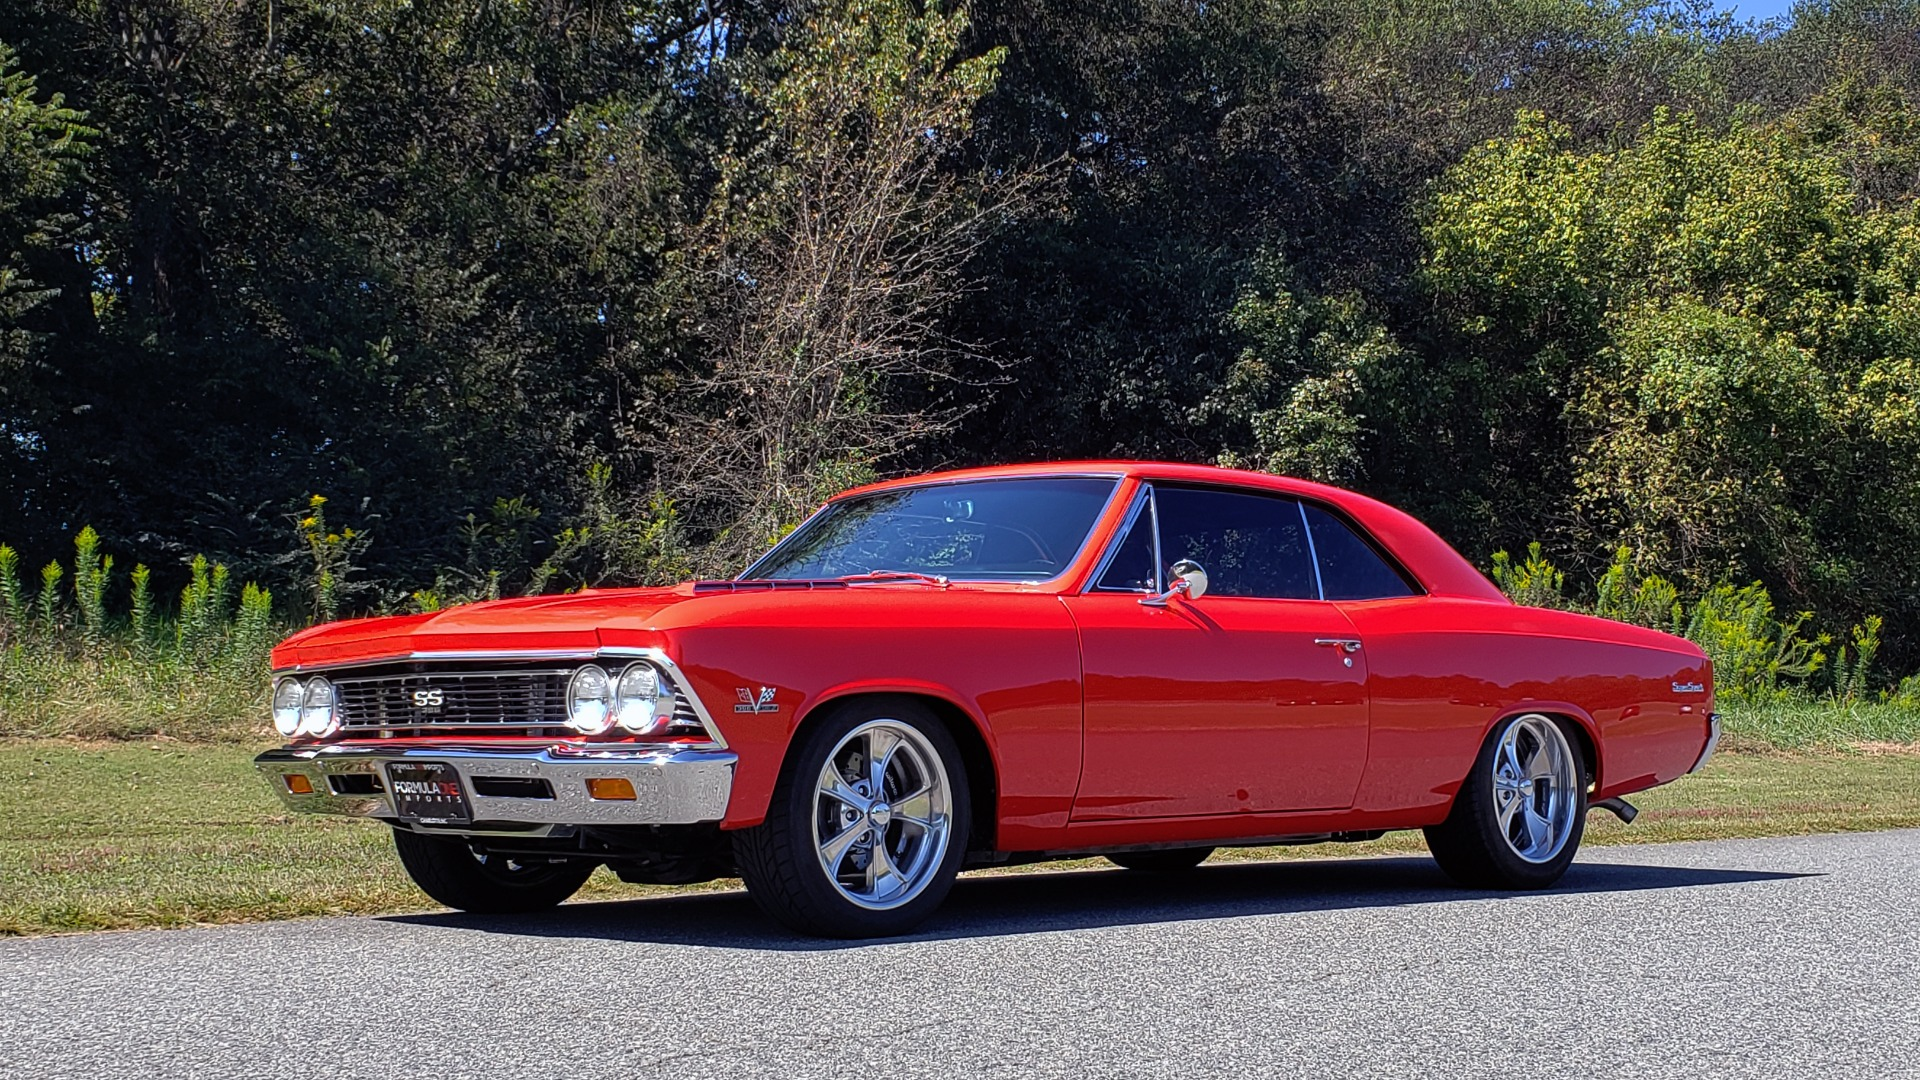 Used 1966 Chevrolet CHEVELLE SS 396 CUSTOM RESTO-MOD / 4-SPEED MANUAL / 12-BOLT REAR for sale $79,999 at Formula Imports in Charlotte NC 28227 4